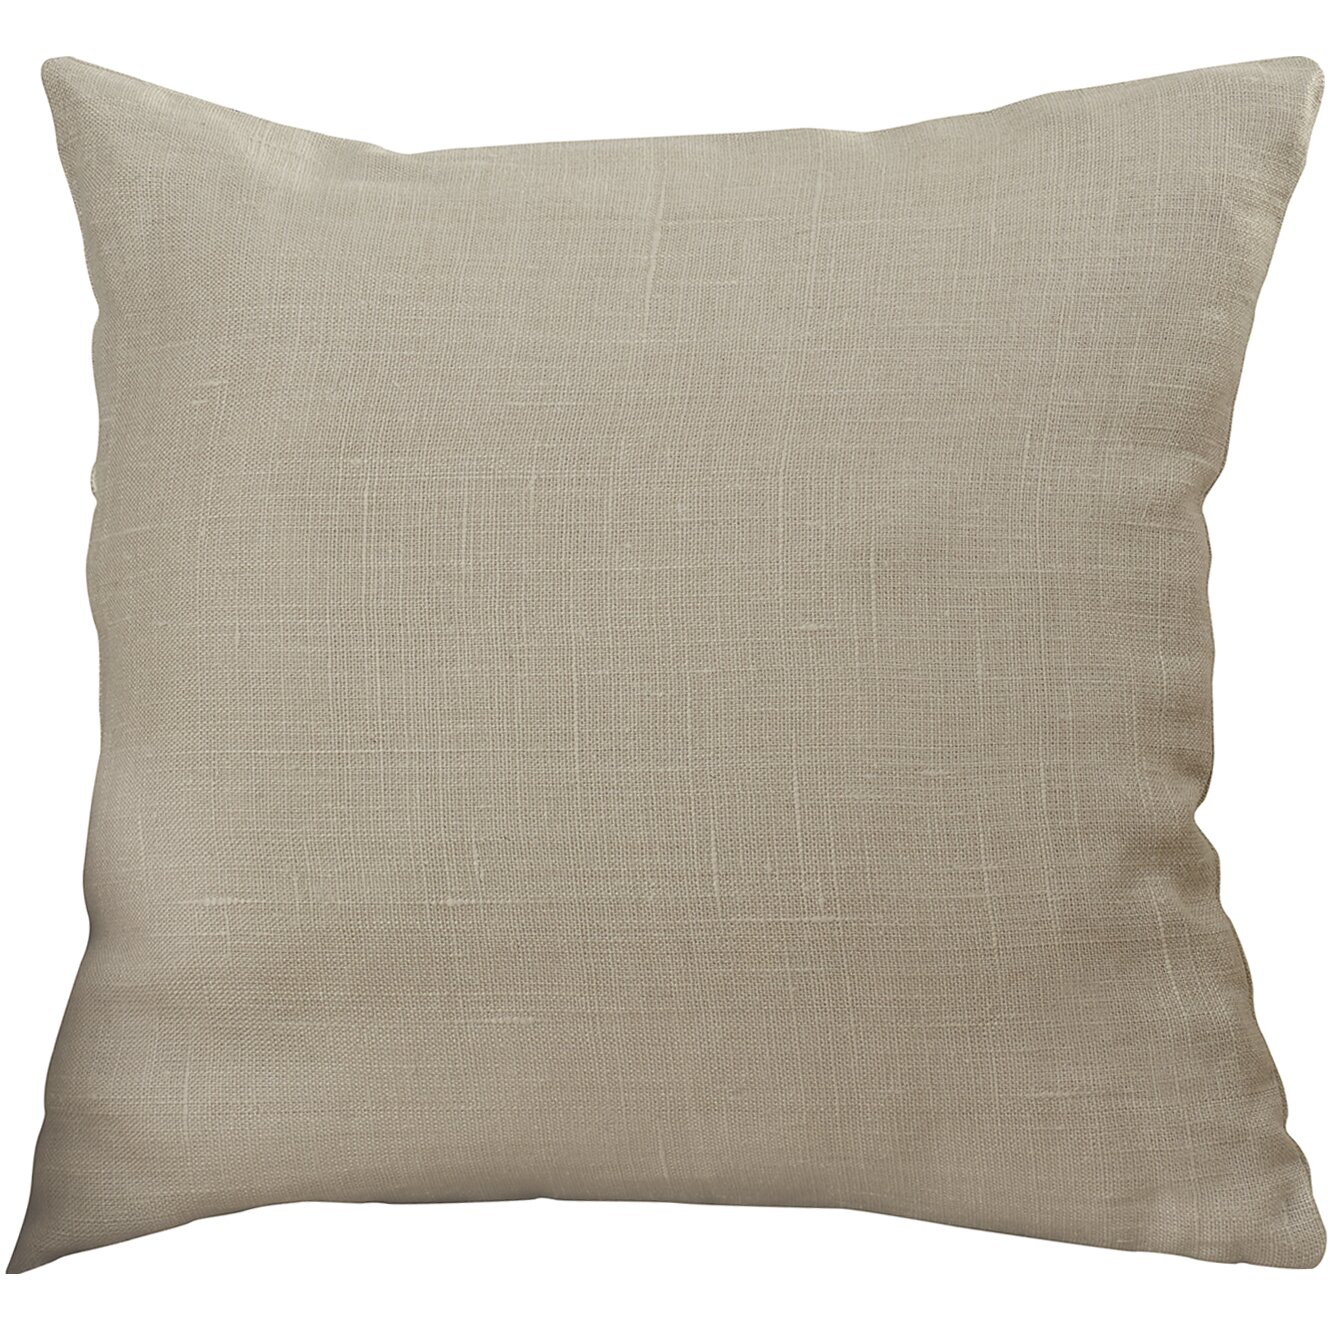 Bungalow Rose Kreta Linen Throw Pillow Wayfair